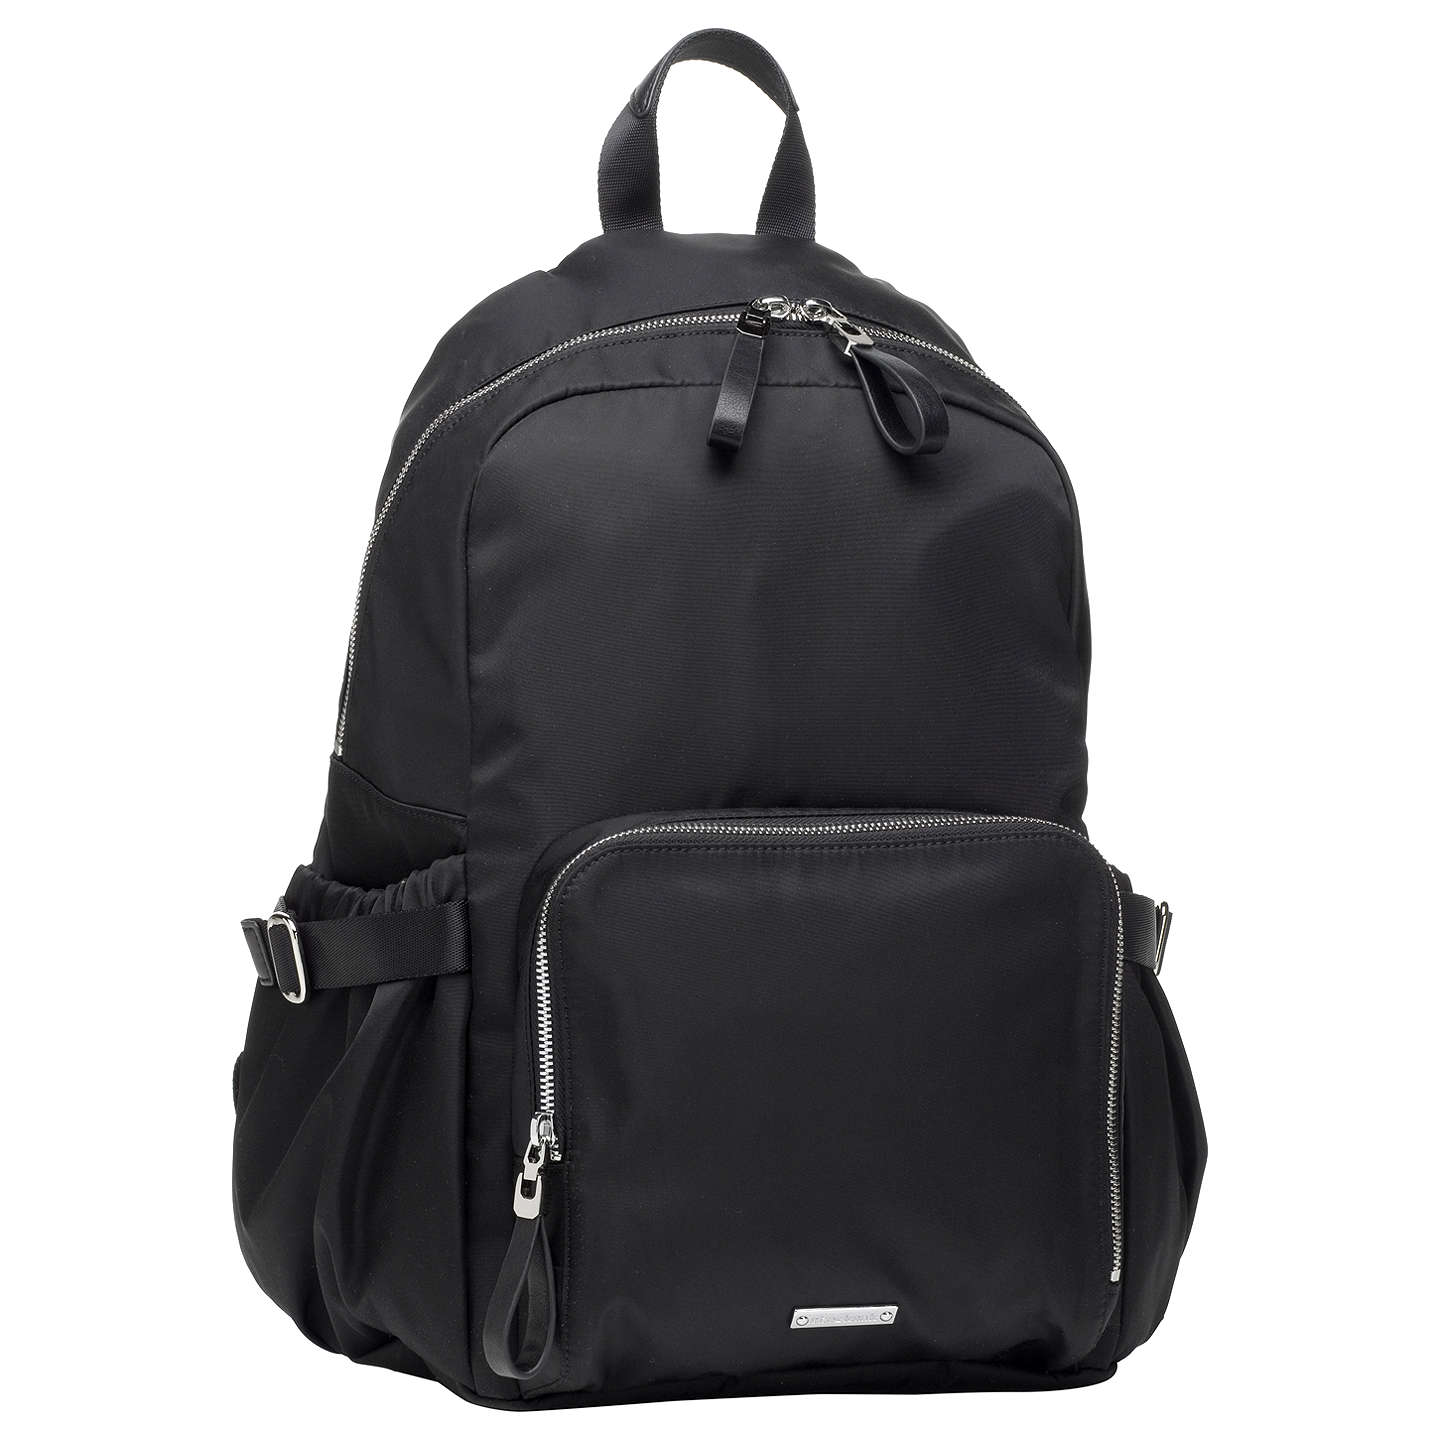 Storksak Hero Changing Backpack, Black by Storksak